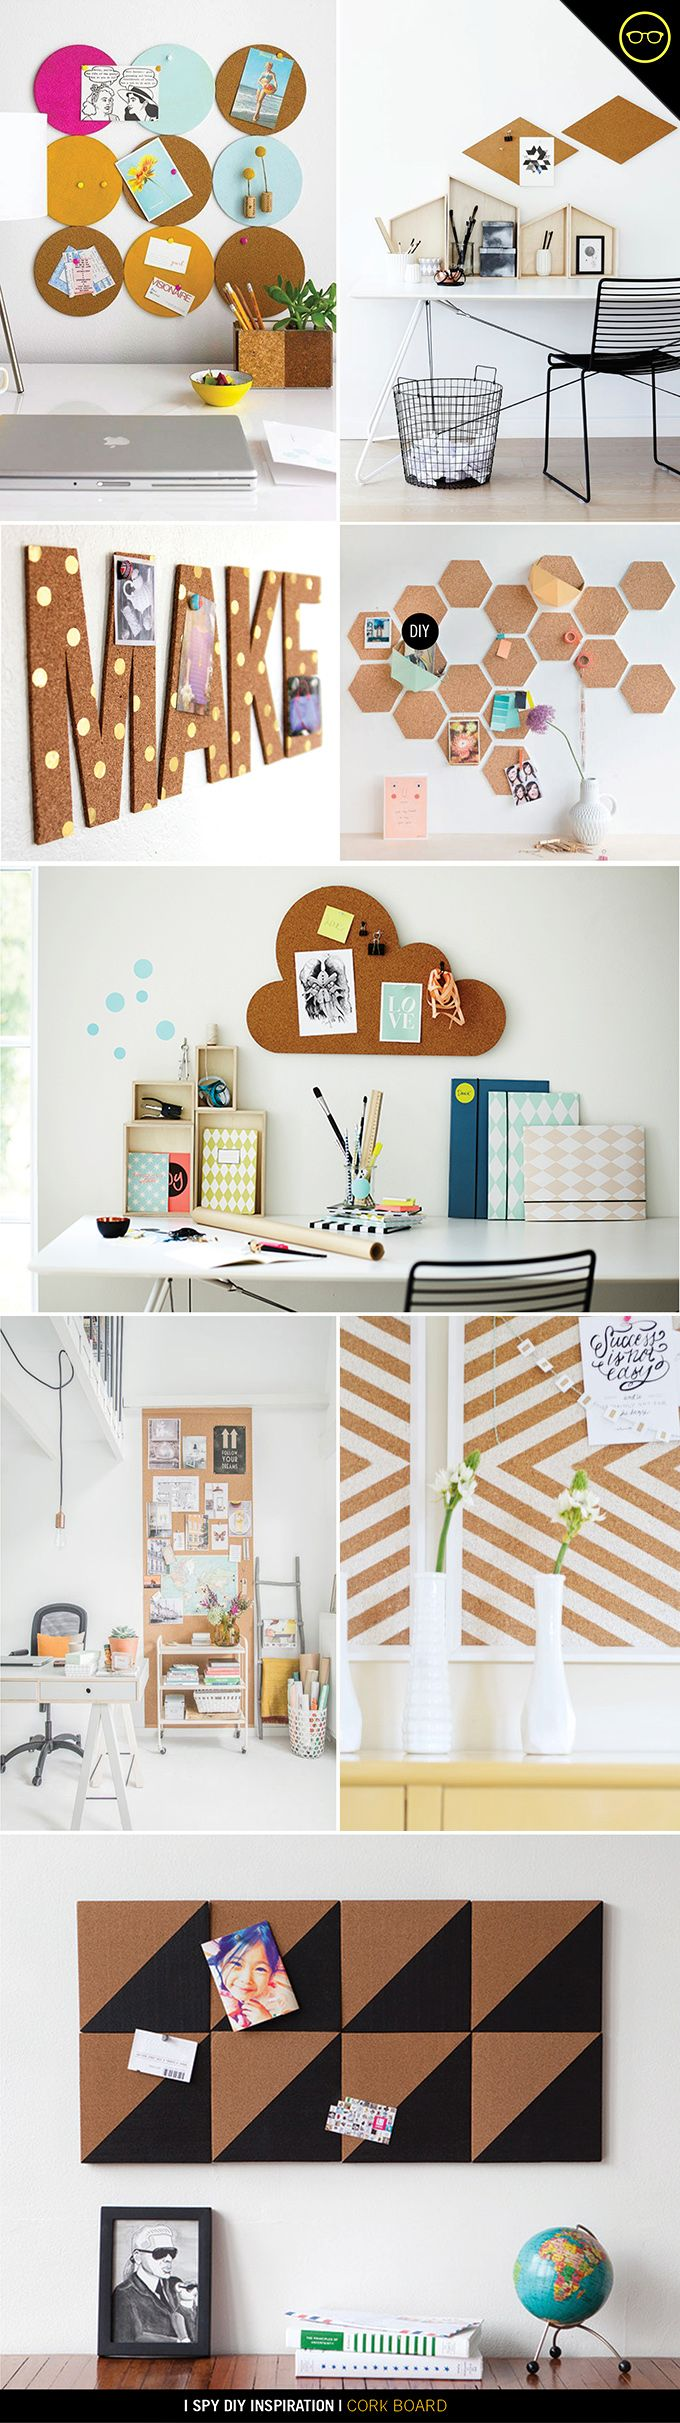 inspiration cork boards i spy diy workspace goals ideen f rs b ro pinterest deko. Black Bedroom Furniture Sets. Home Design Ideas